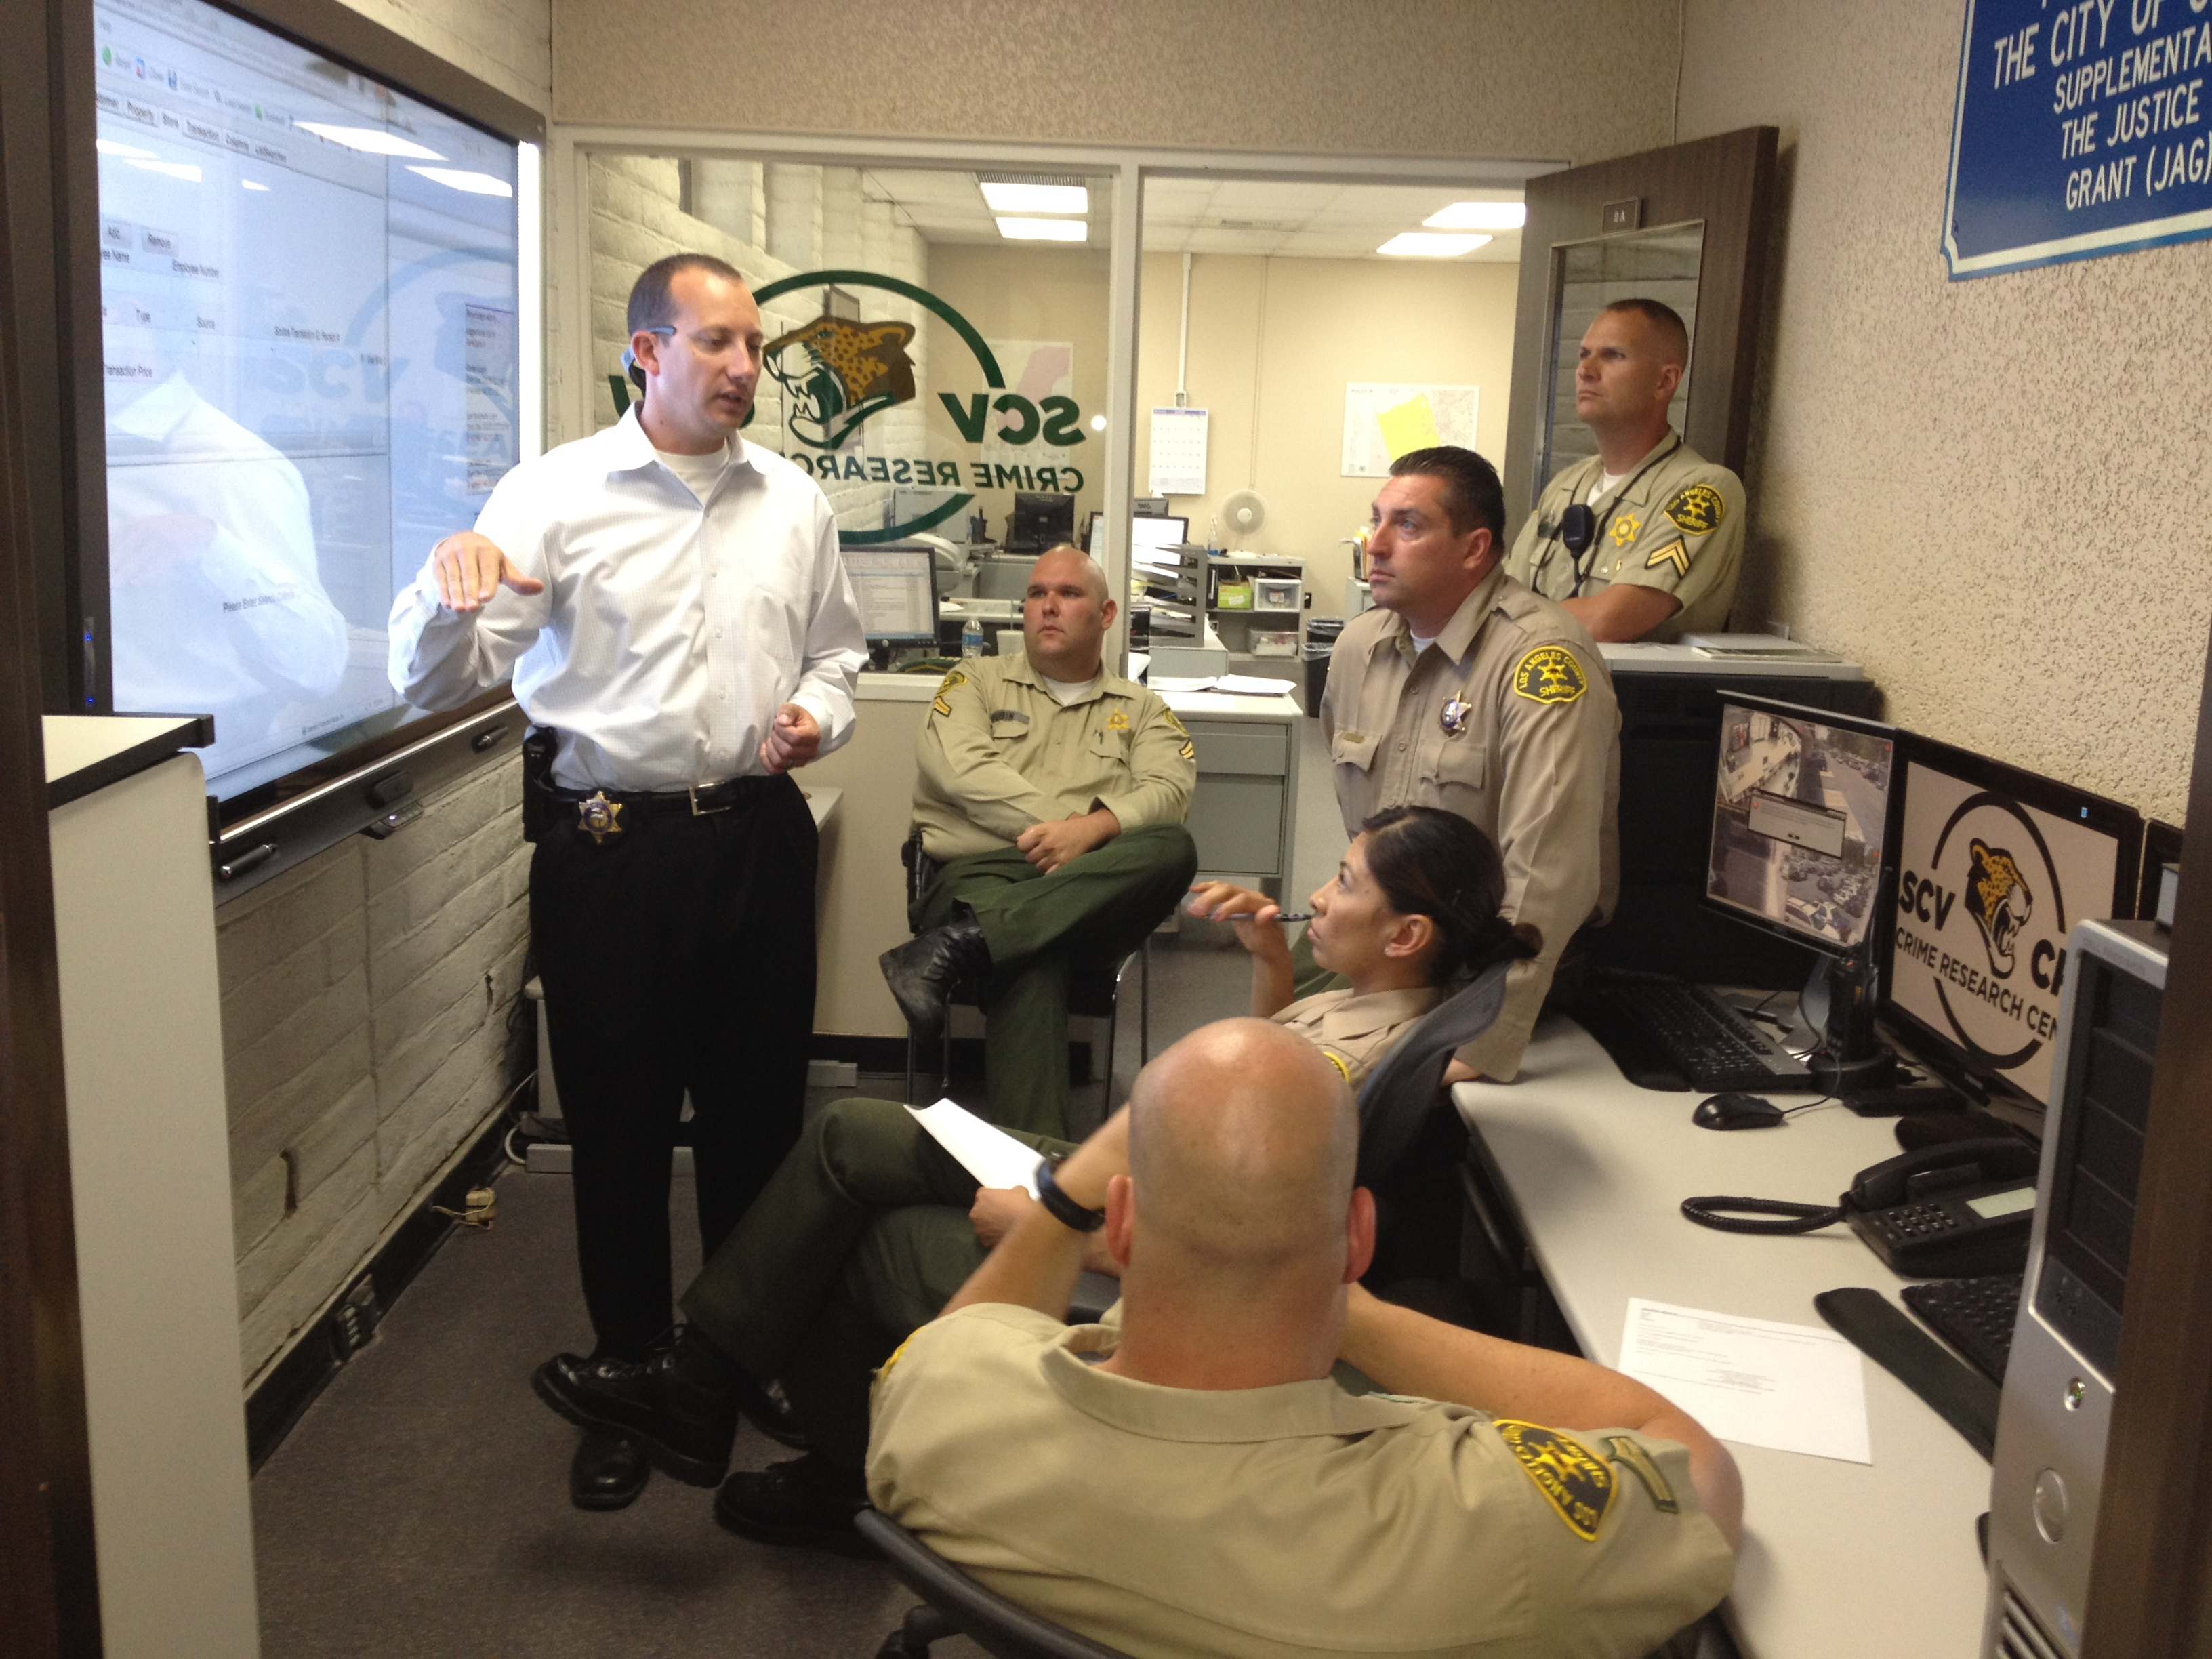 Briefing in the Crime Research Center